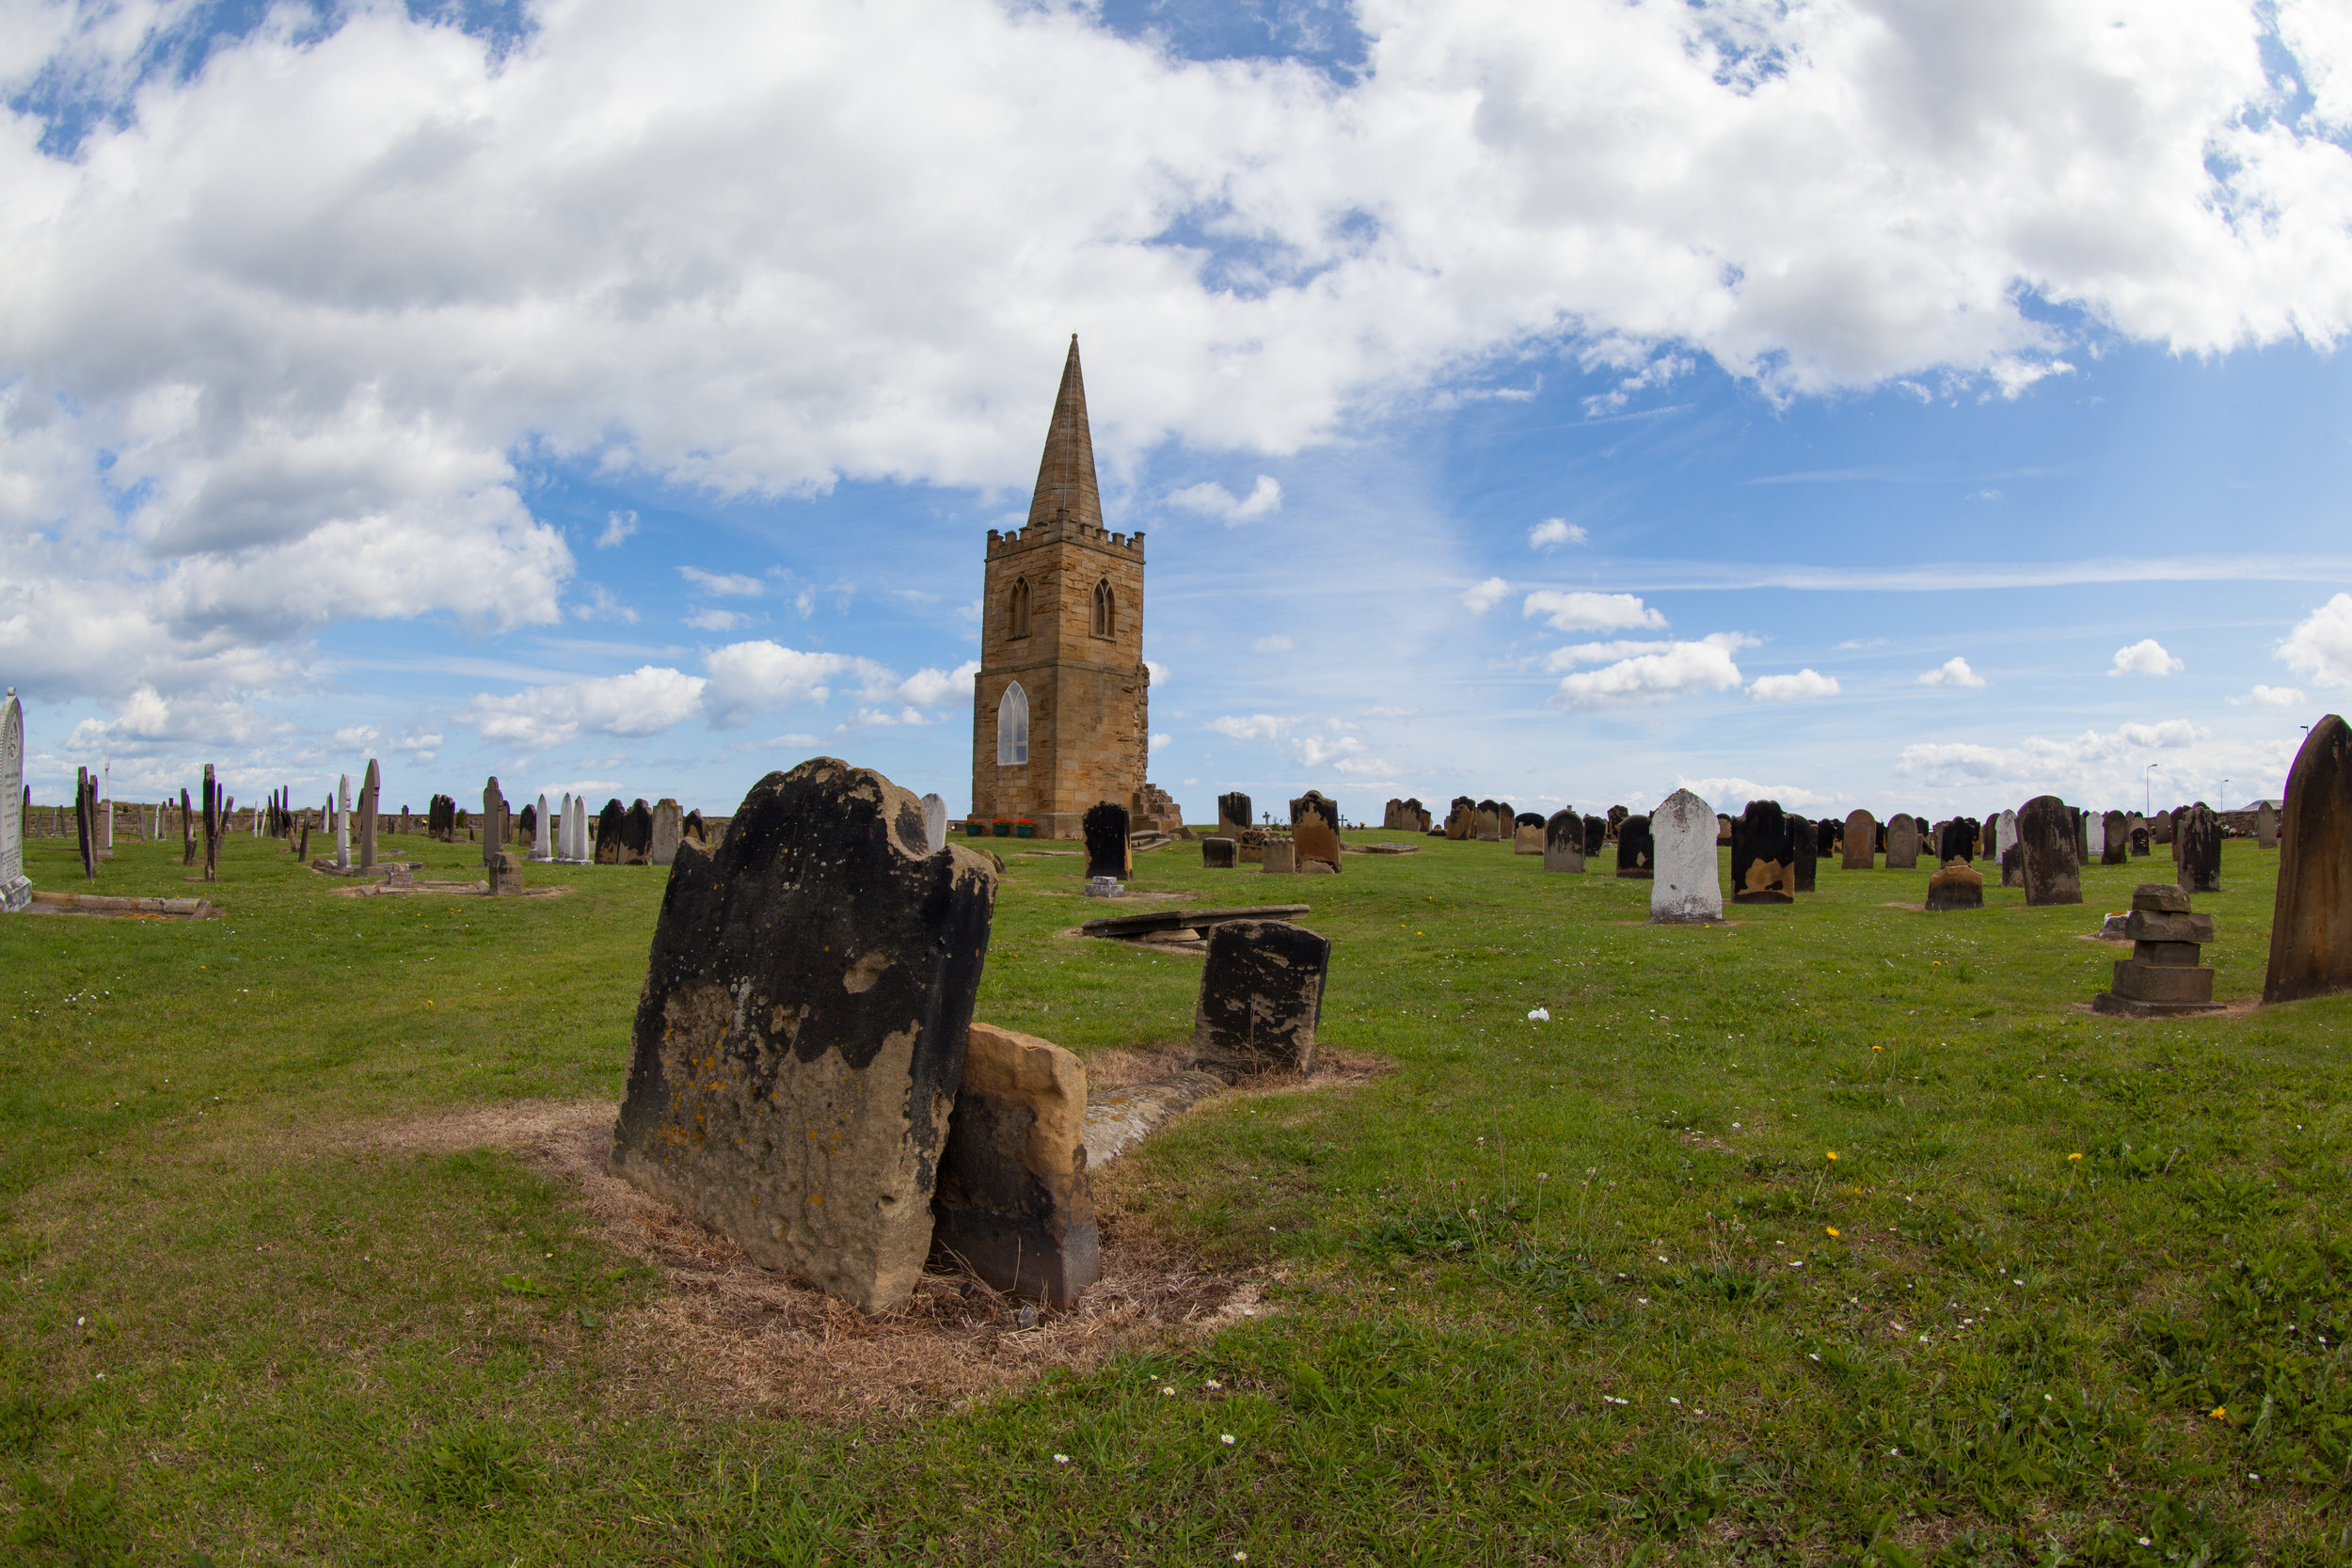 A church and graveyard.